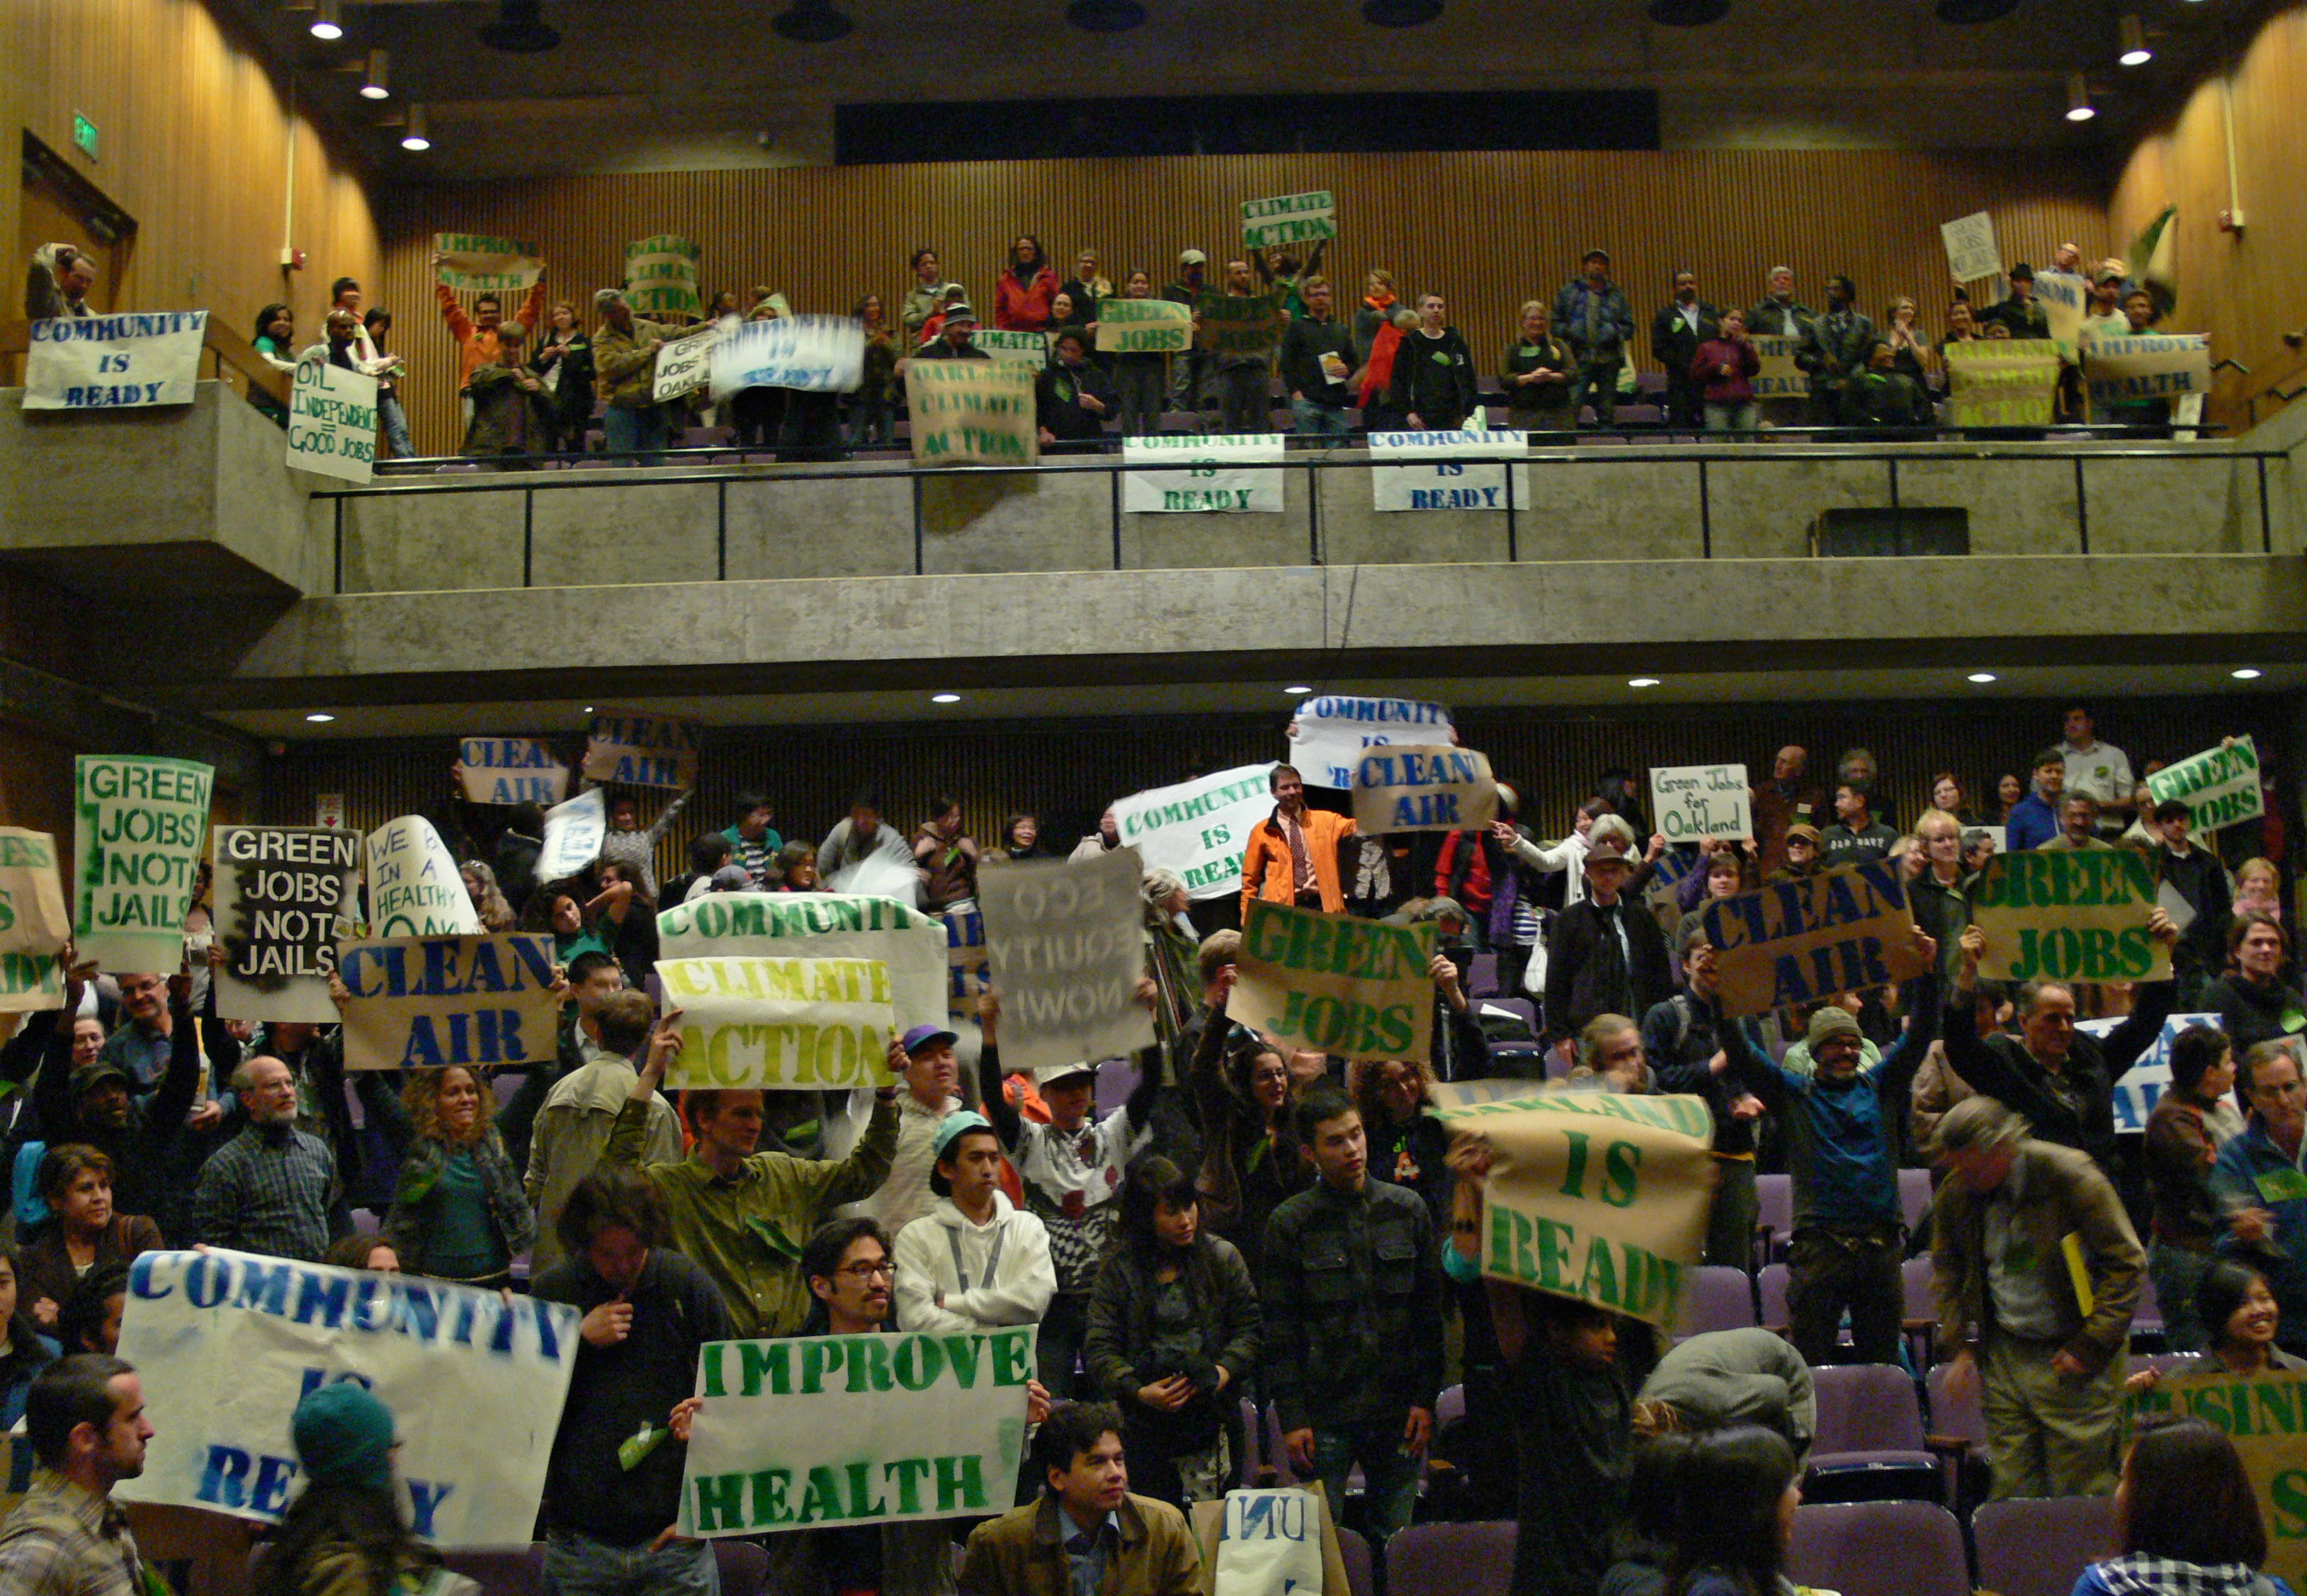 Oakland's 2020 Energy and Climate Action Plan Image